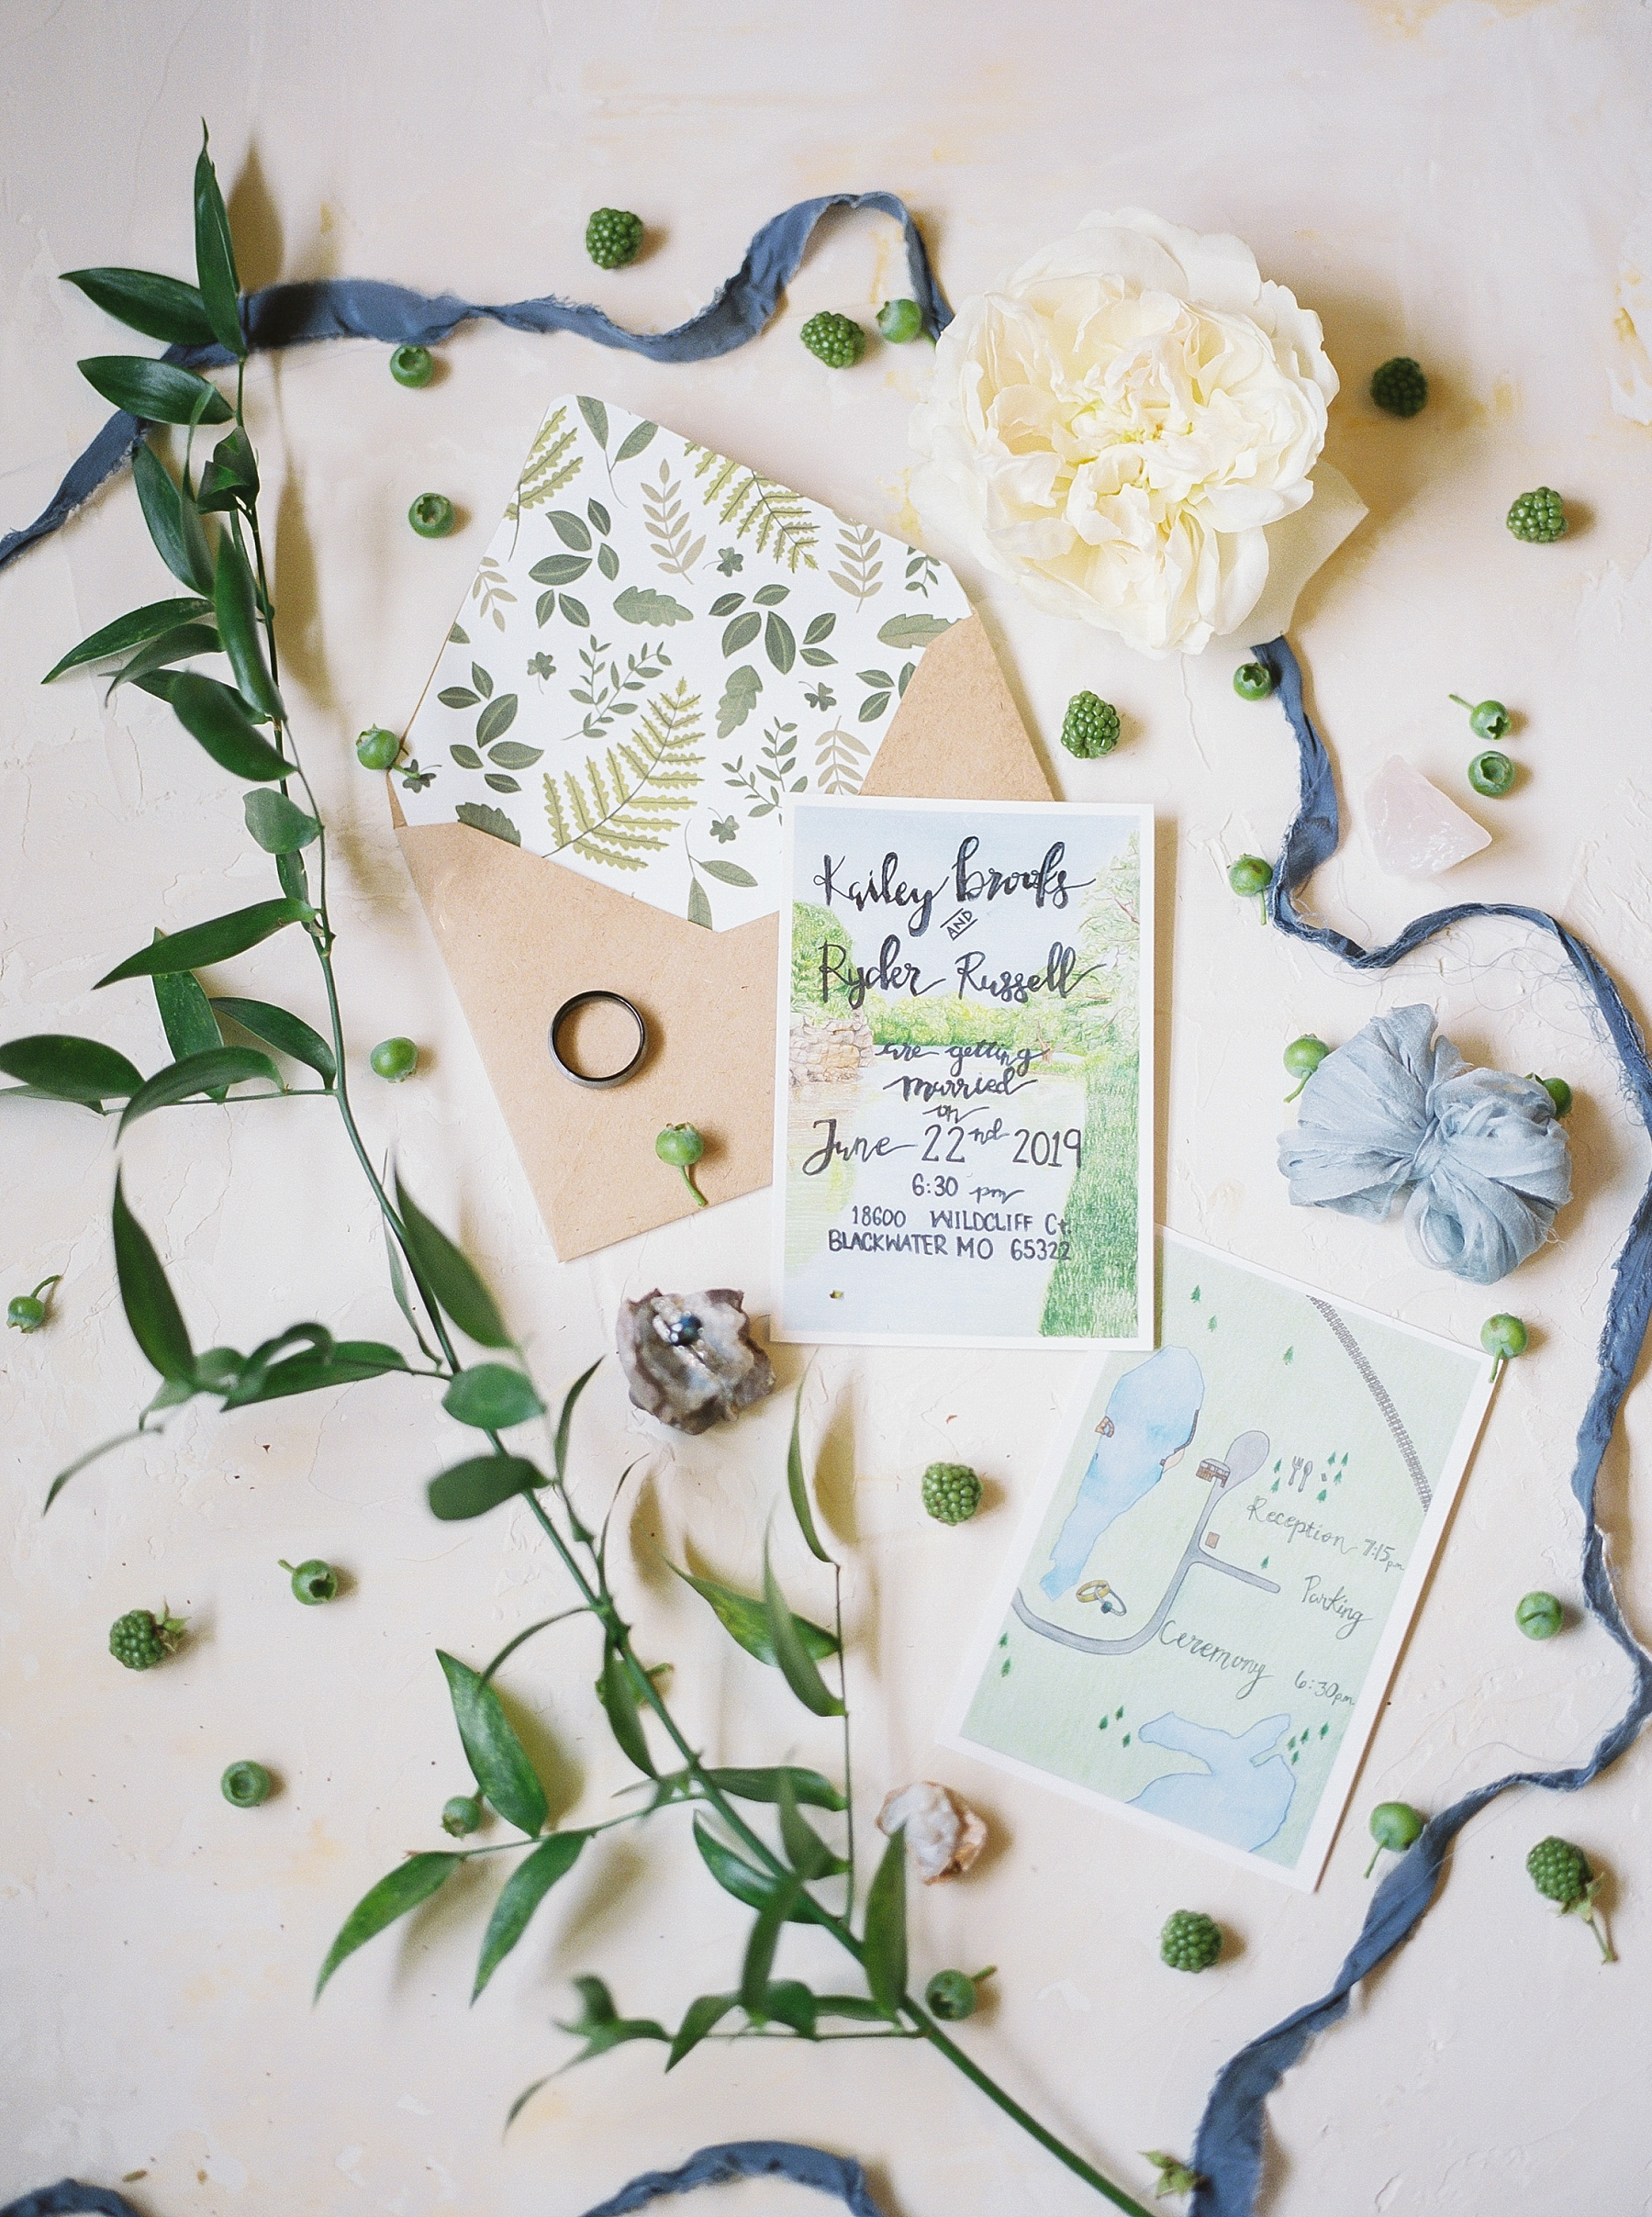 Intimate Mountain Hues Inspired Summer Wedding at Wildcliff Weddings and Events by Kelsi Kliethermes Photography Best Missouri and Maui Wedding Photographer_0055.jpg